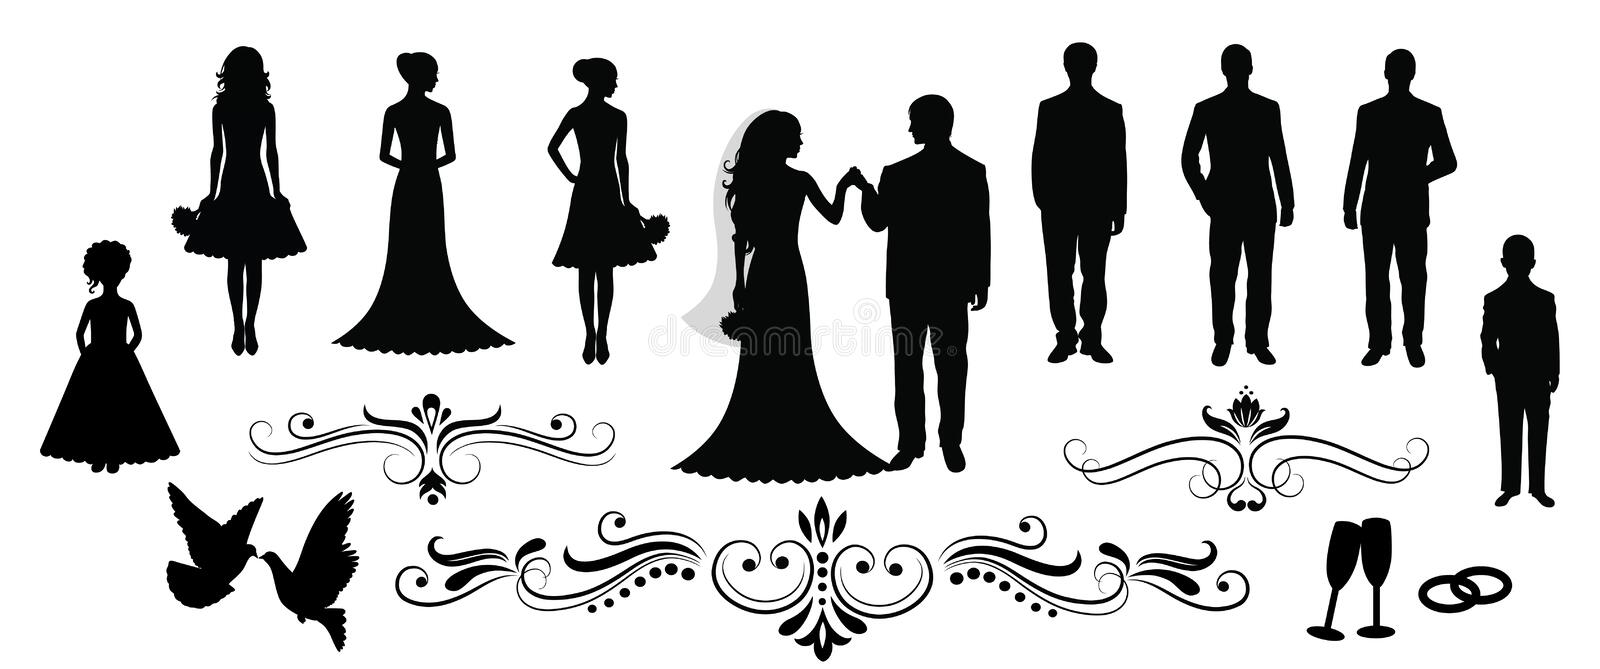 Wedding. Set of vector wedding silhouettes